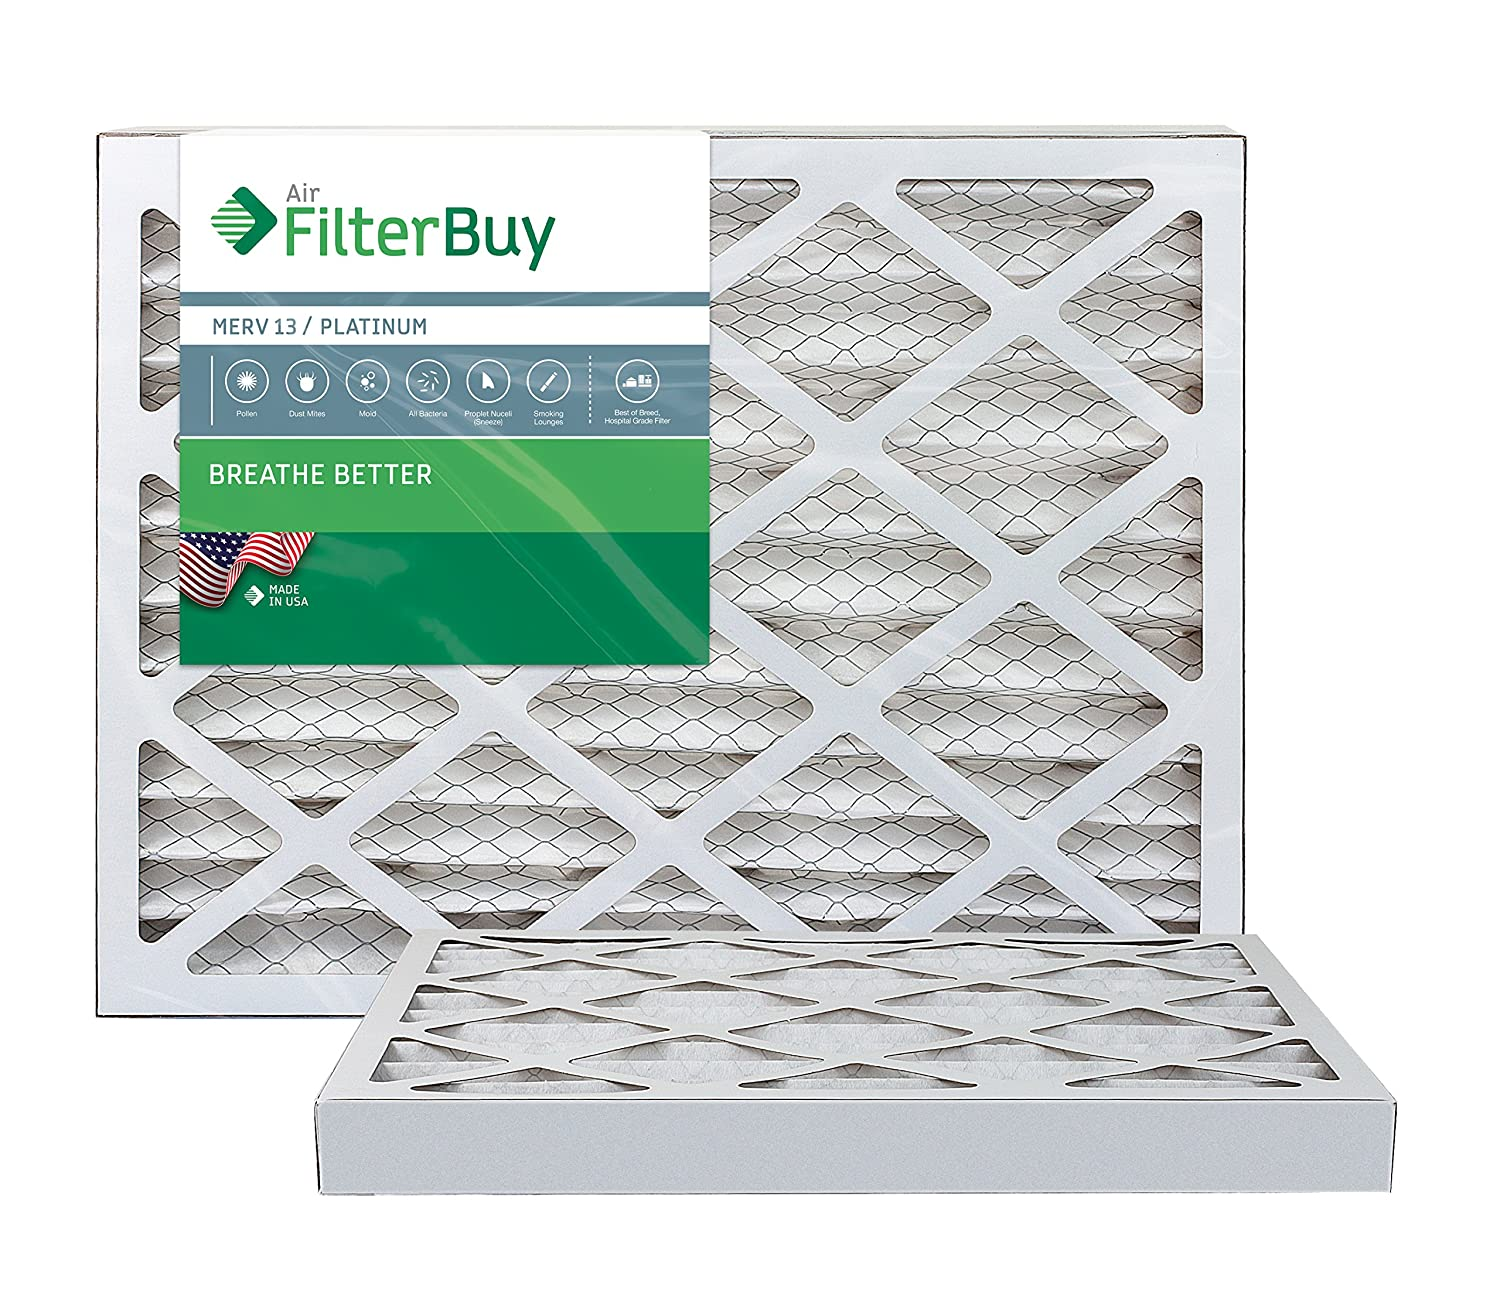 Nordic Pure 11/_1//4x11/_1//4x1 Exact MERV 13 Pleated AC Furnace Air Filters 1 Pack